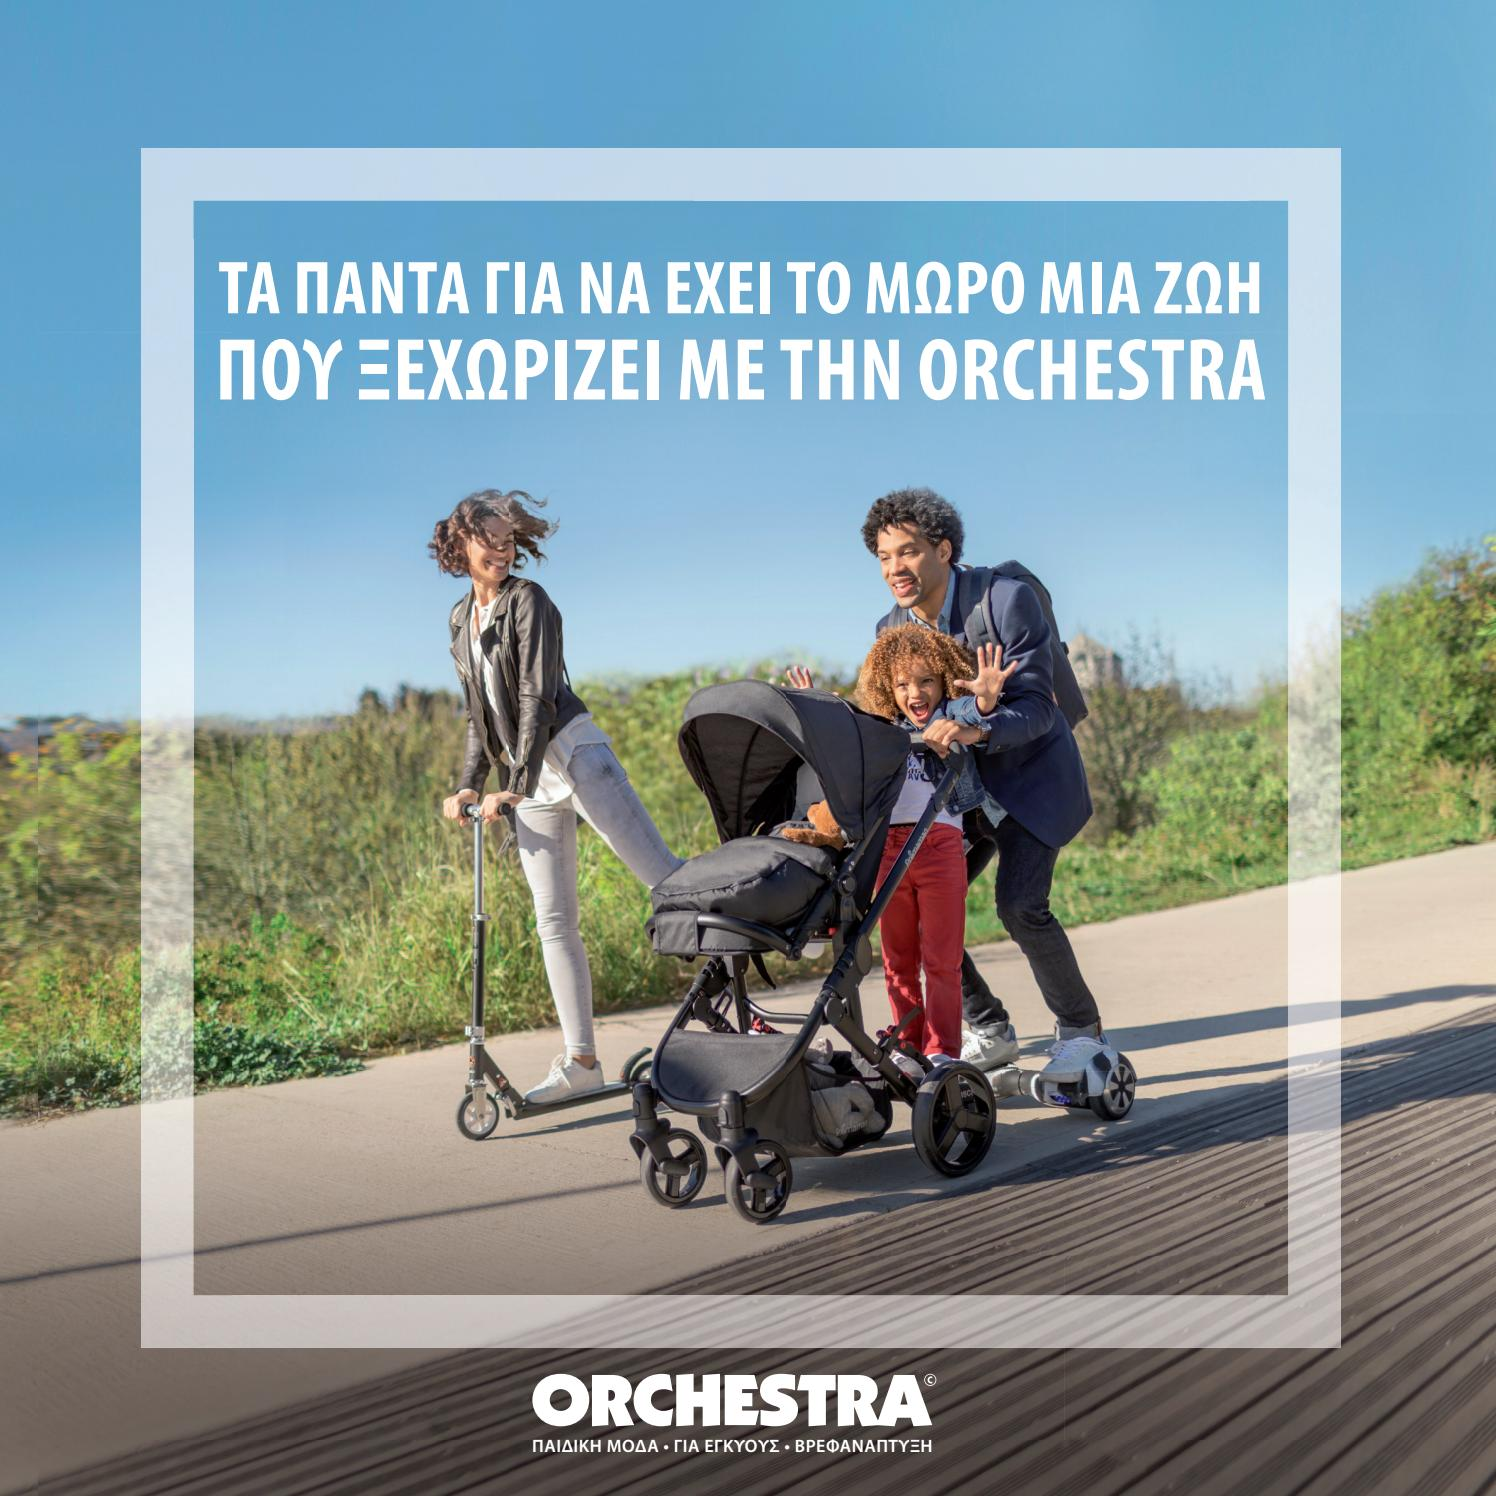 edc39f2b428b Childcare Catalog- Orchestra - 2018 - GREECE by Orchestra - issuu